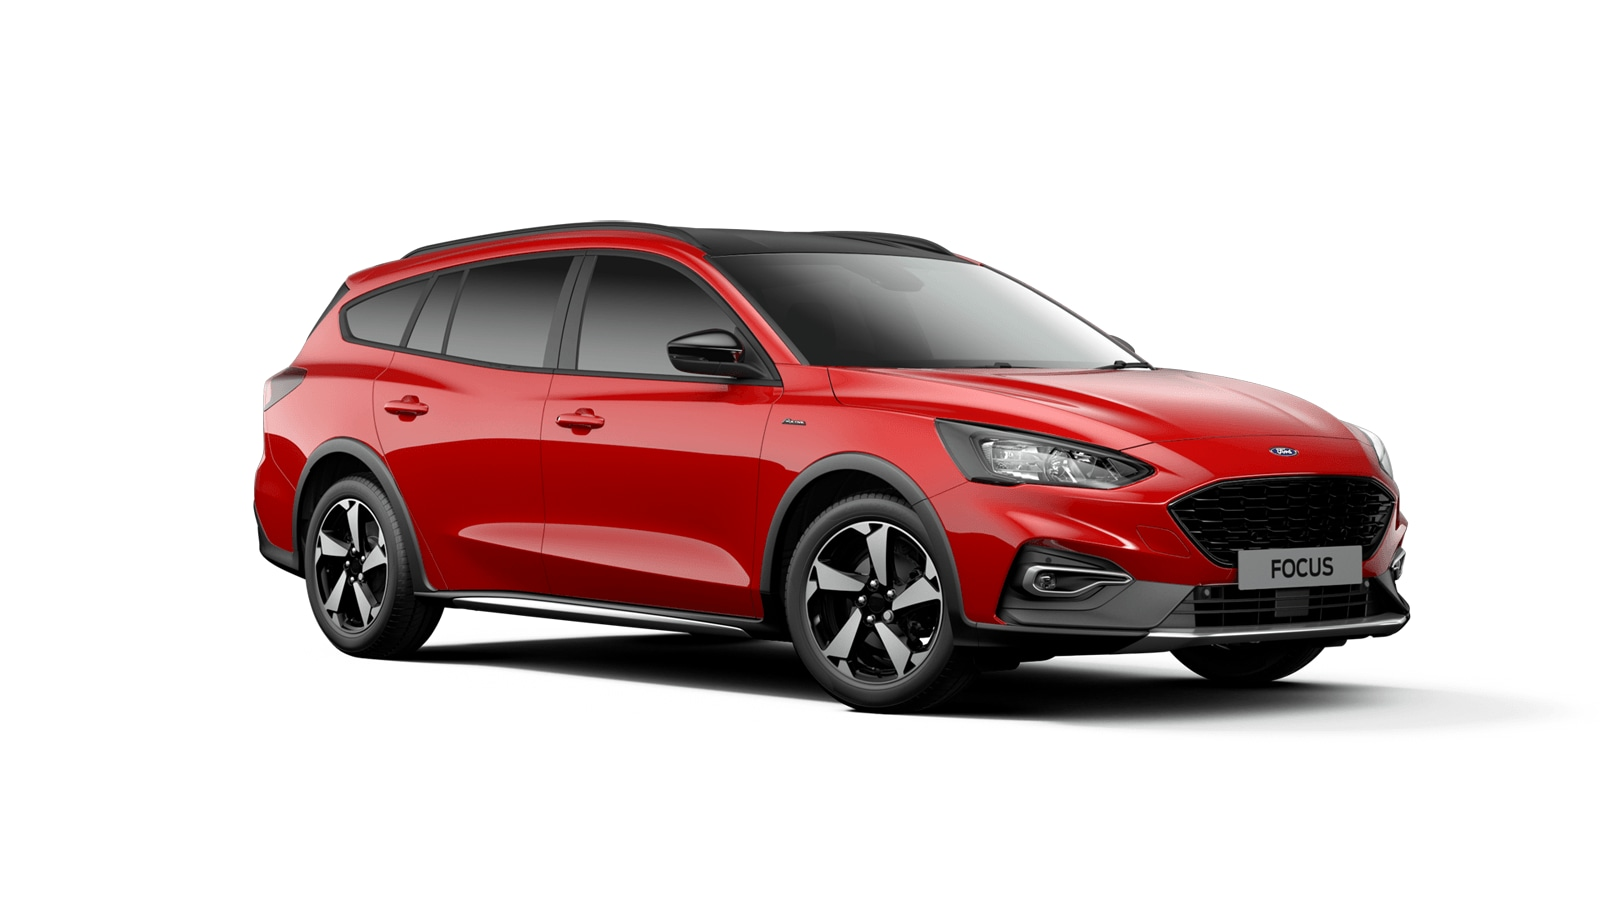 New Ford Focus EcoBoost Mild Hybrid Active Edition mHEV 1.0L EcoBoost 155PS mHEV at RGR Garages